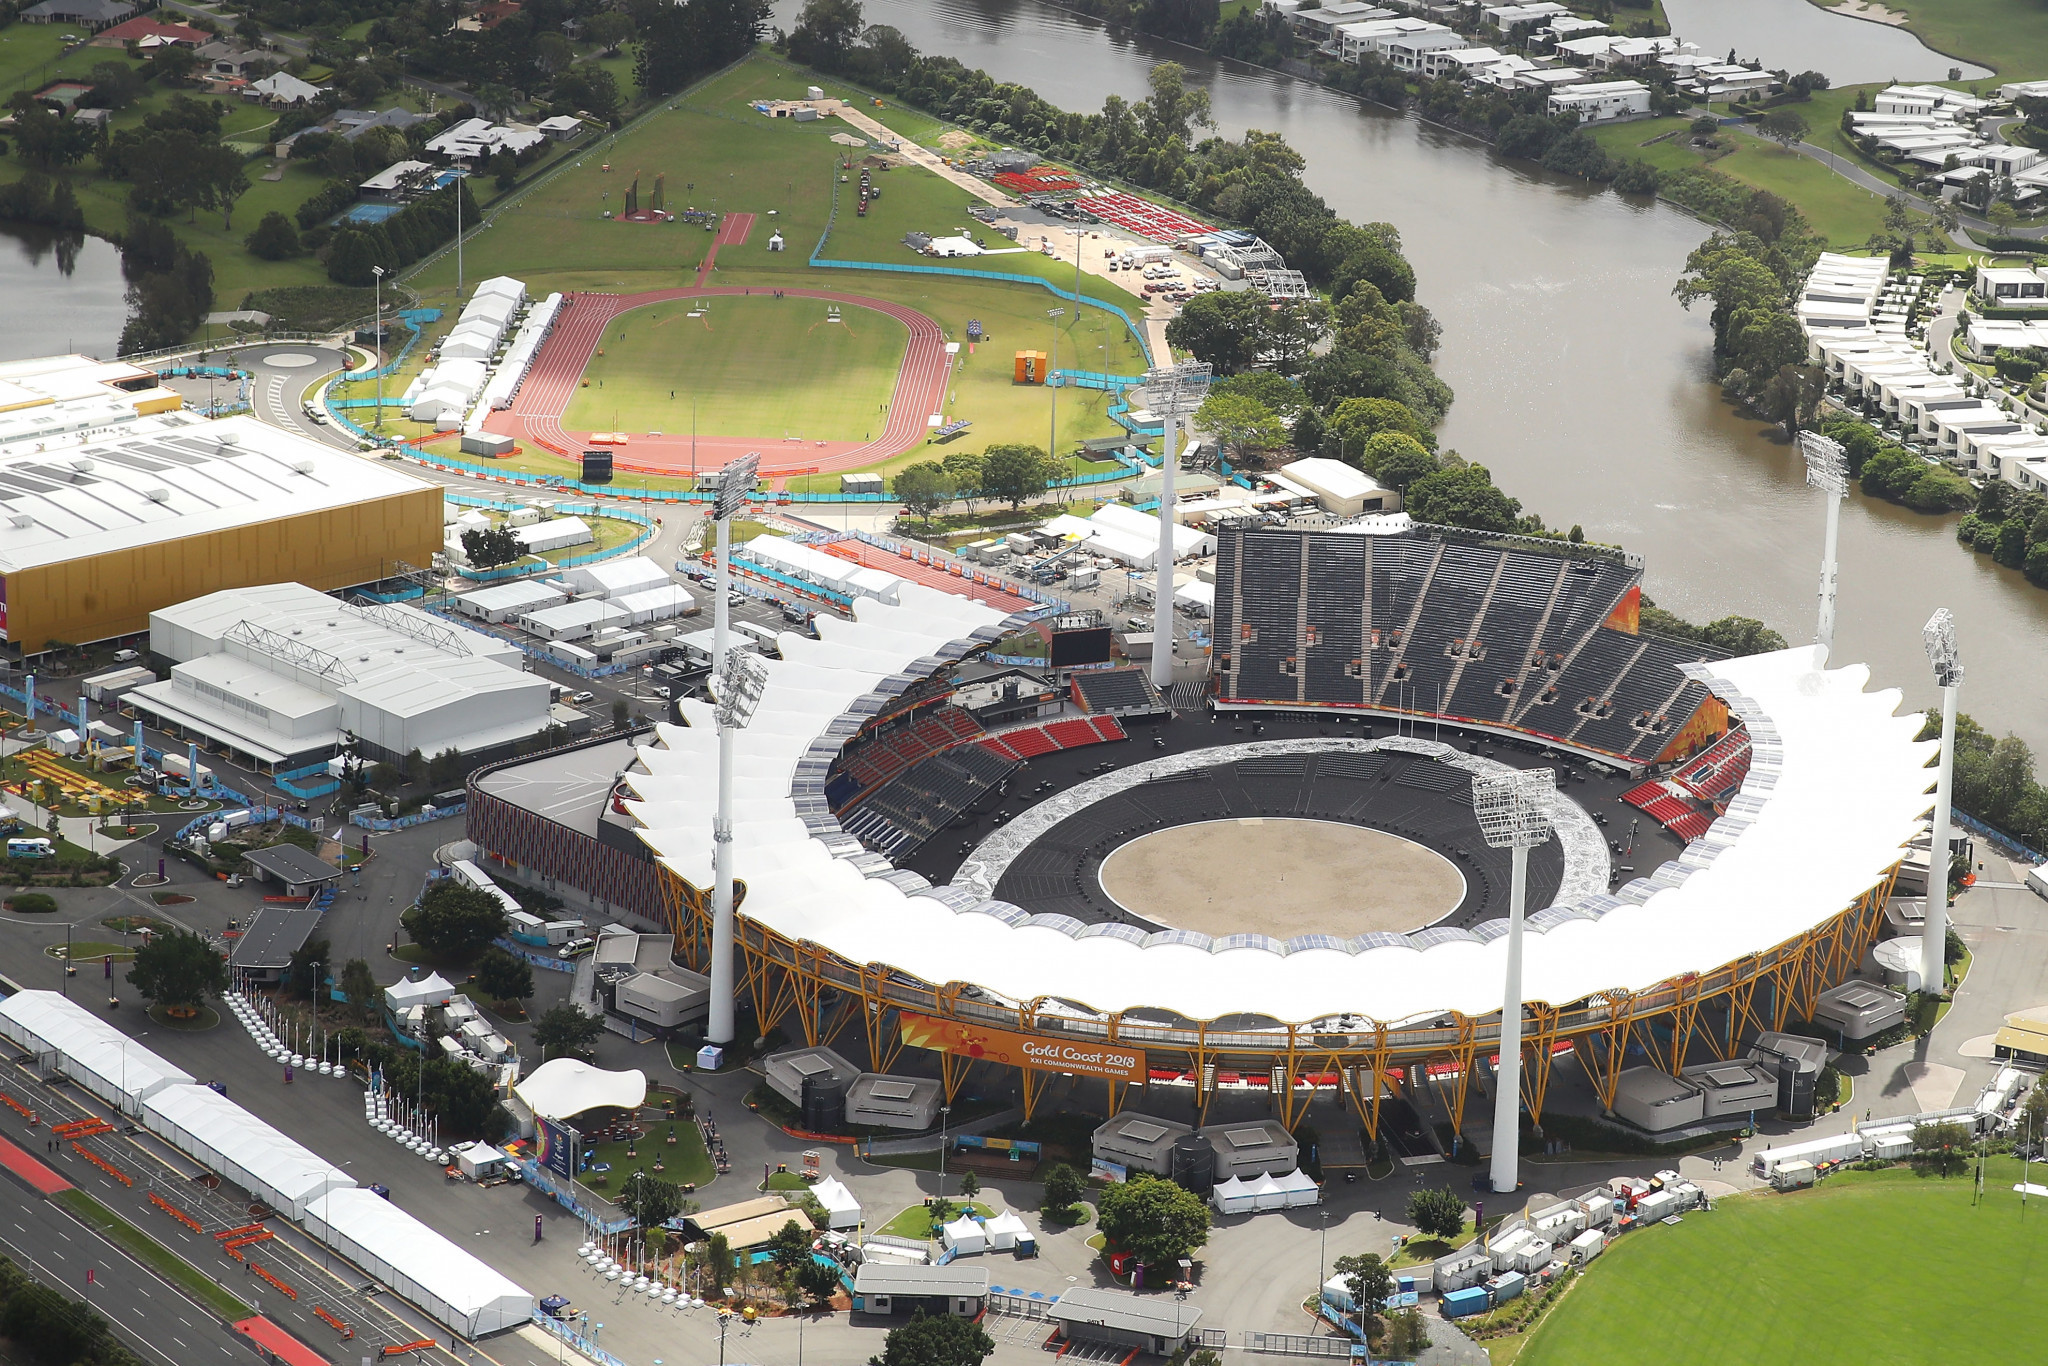 The Opening Ceremony is due to be held at the Carrara Stadium ©Getty Images